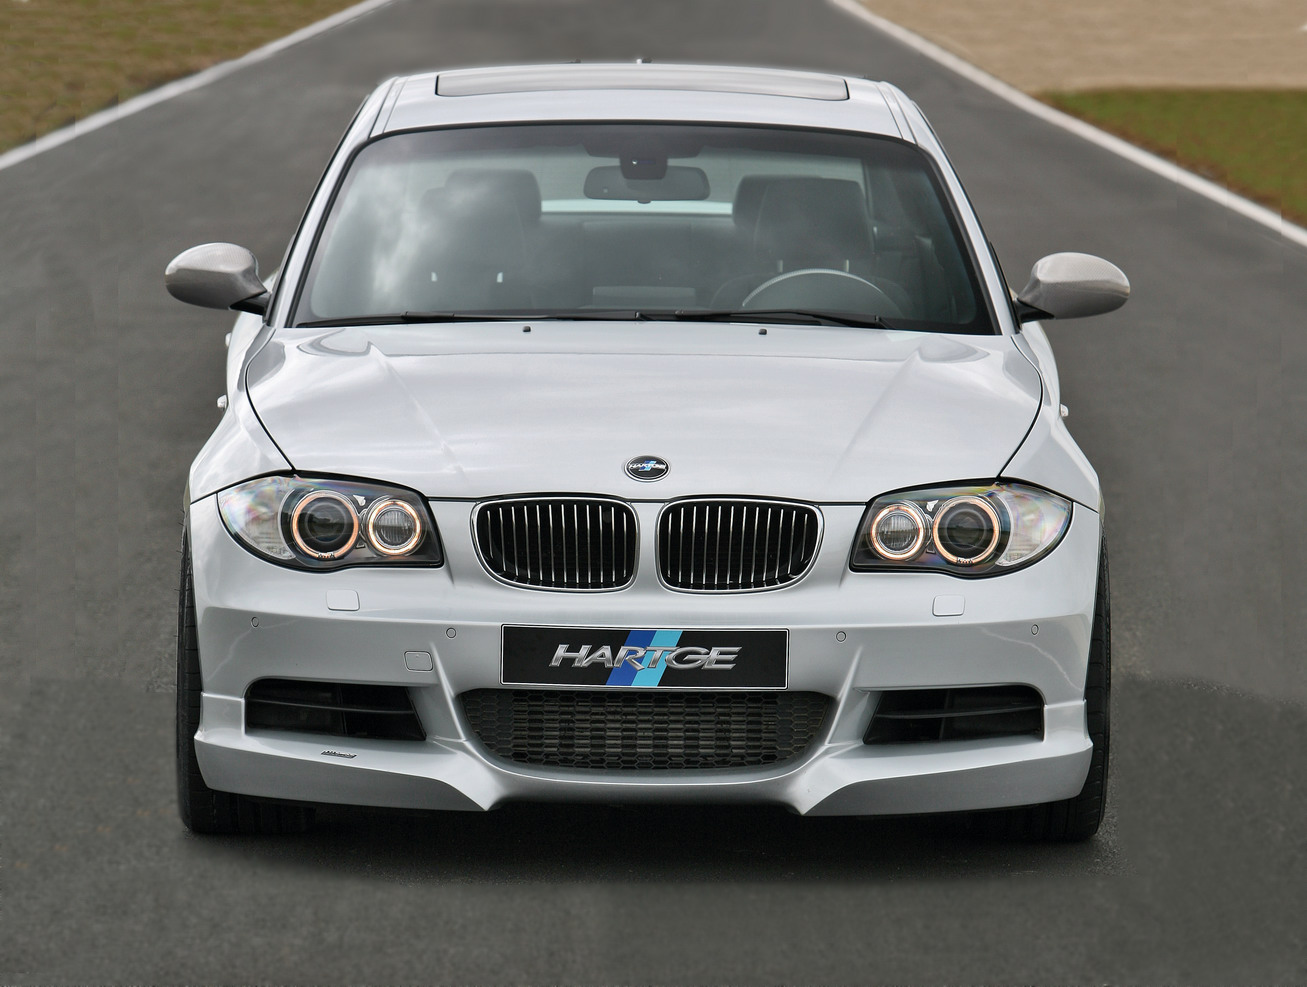 Hartge – BMW 135i 350hp Famous tuner, Hartge, has modified the BMW 135i with